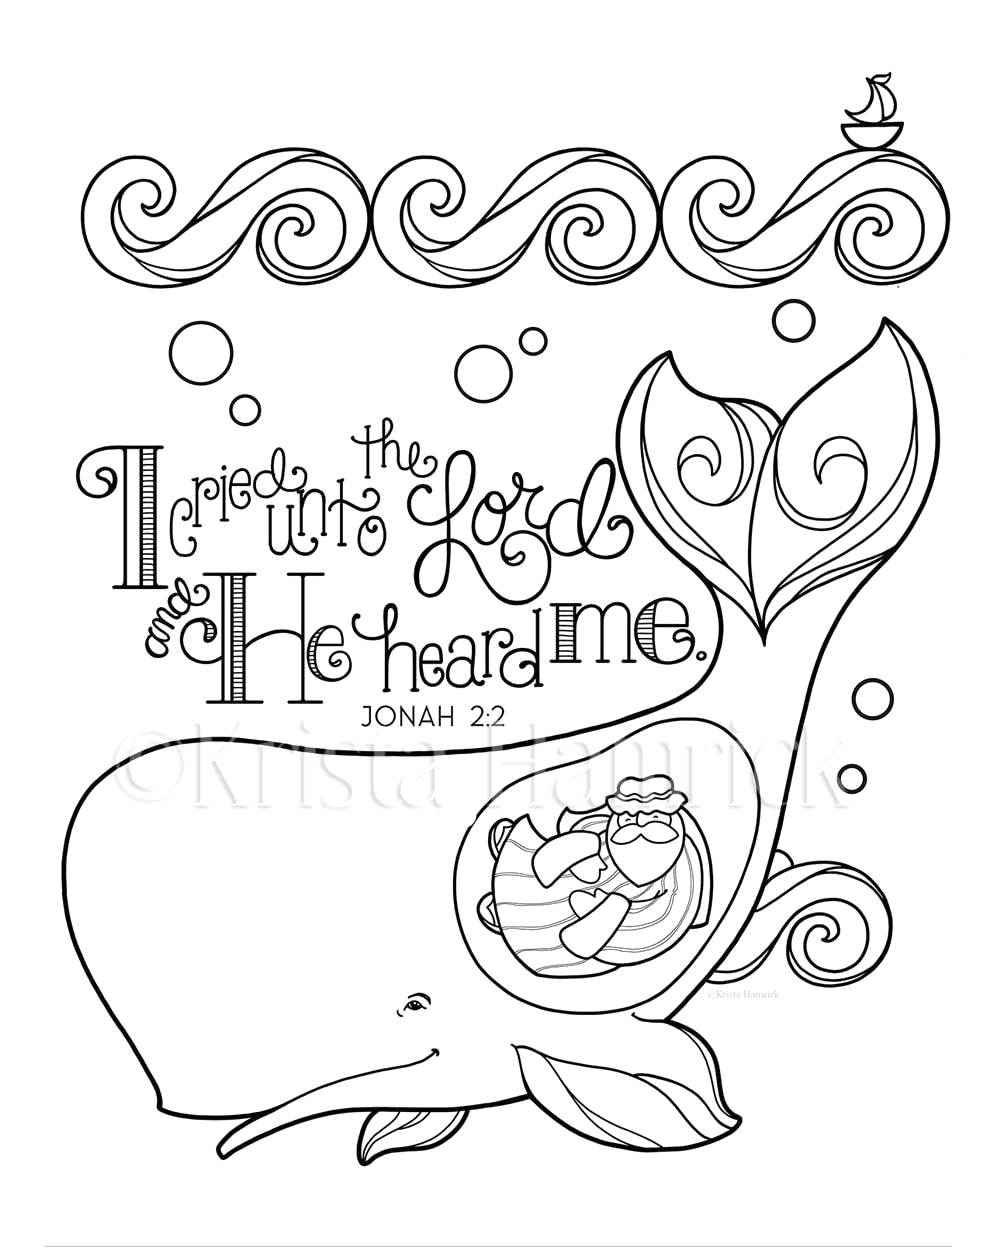 9 jonah and the whale coloring page